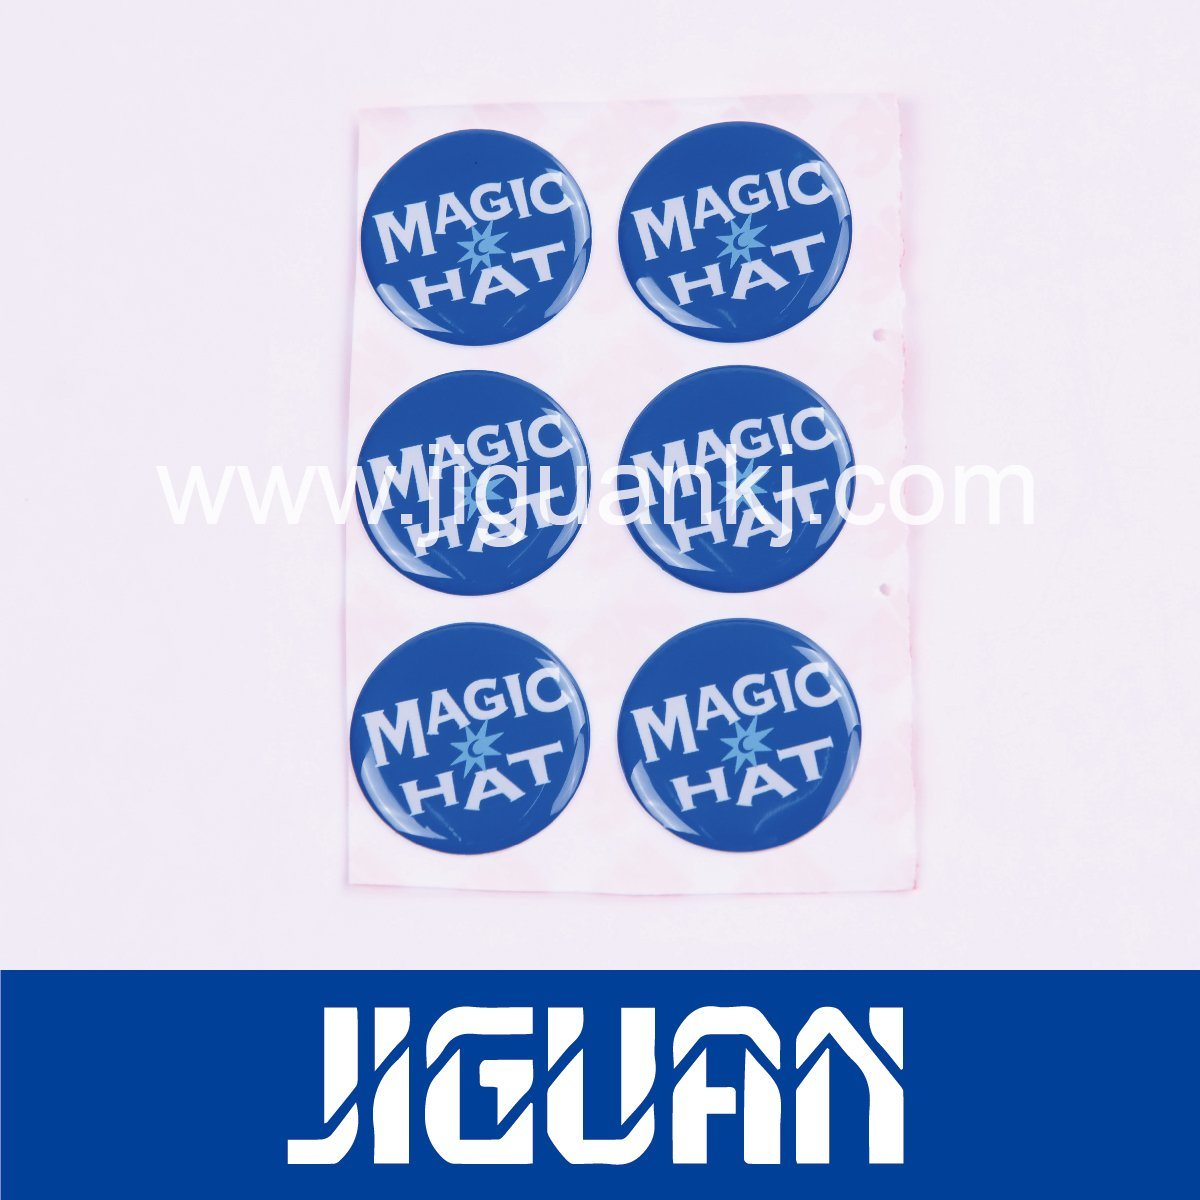 China custom waterproof 3m glue clear epoxy resin dome stickers china dome stickers resin dome stickers